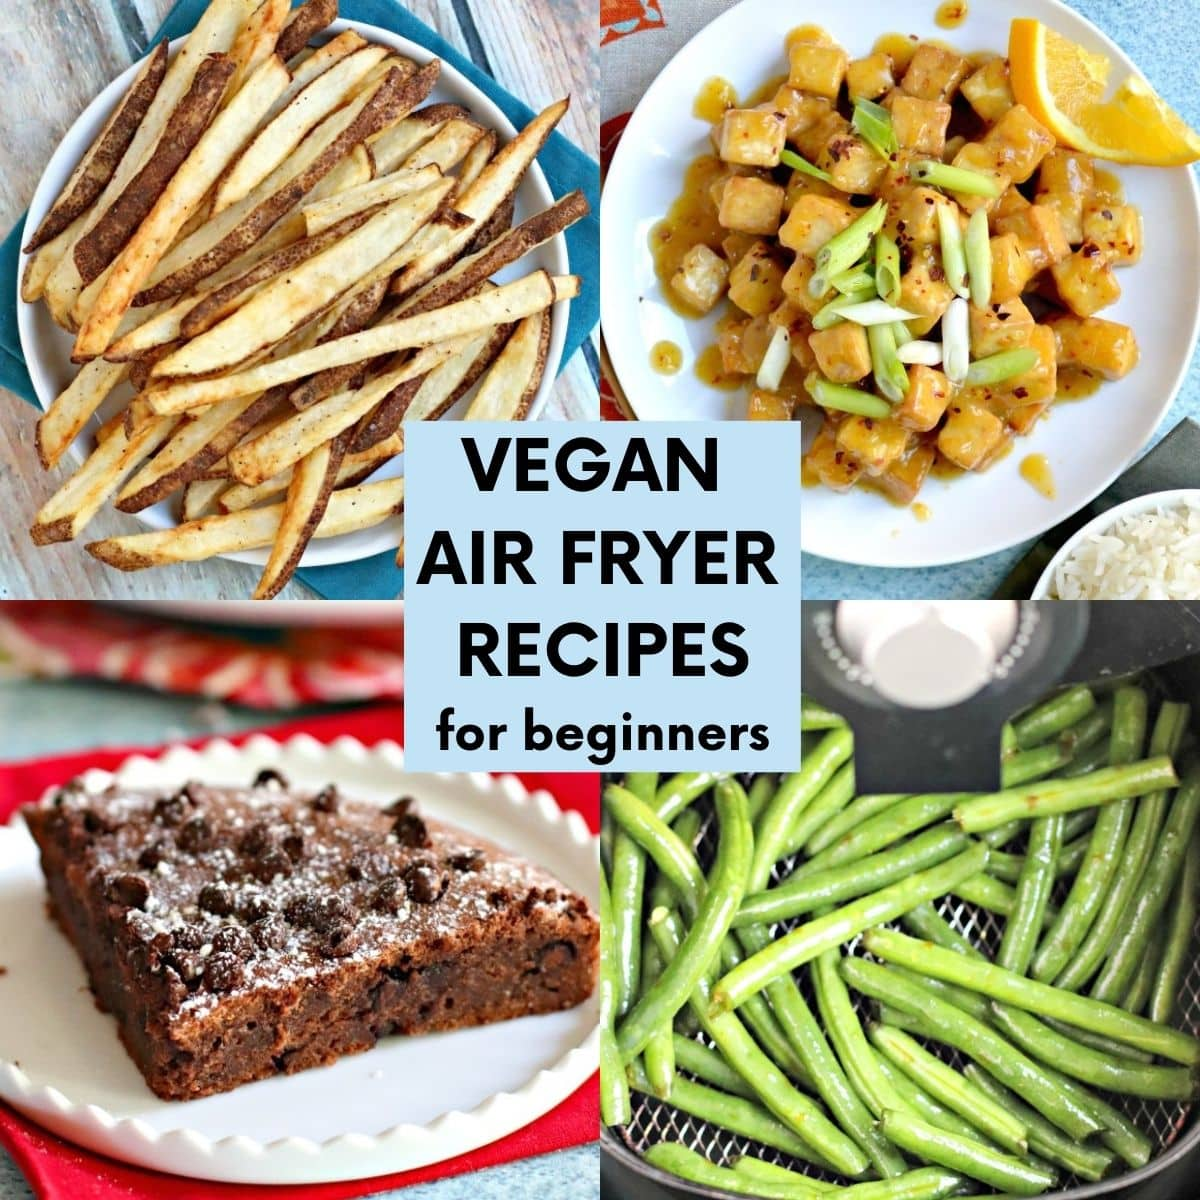 Collage of images of french fries, orange tofu, green beans, and a brownie